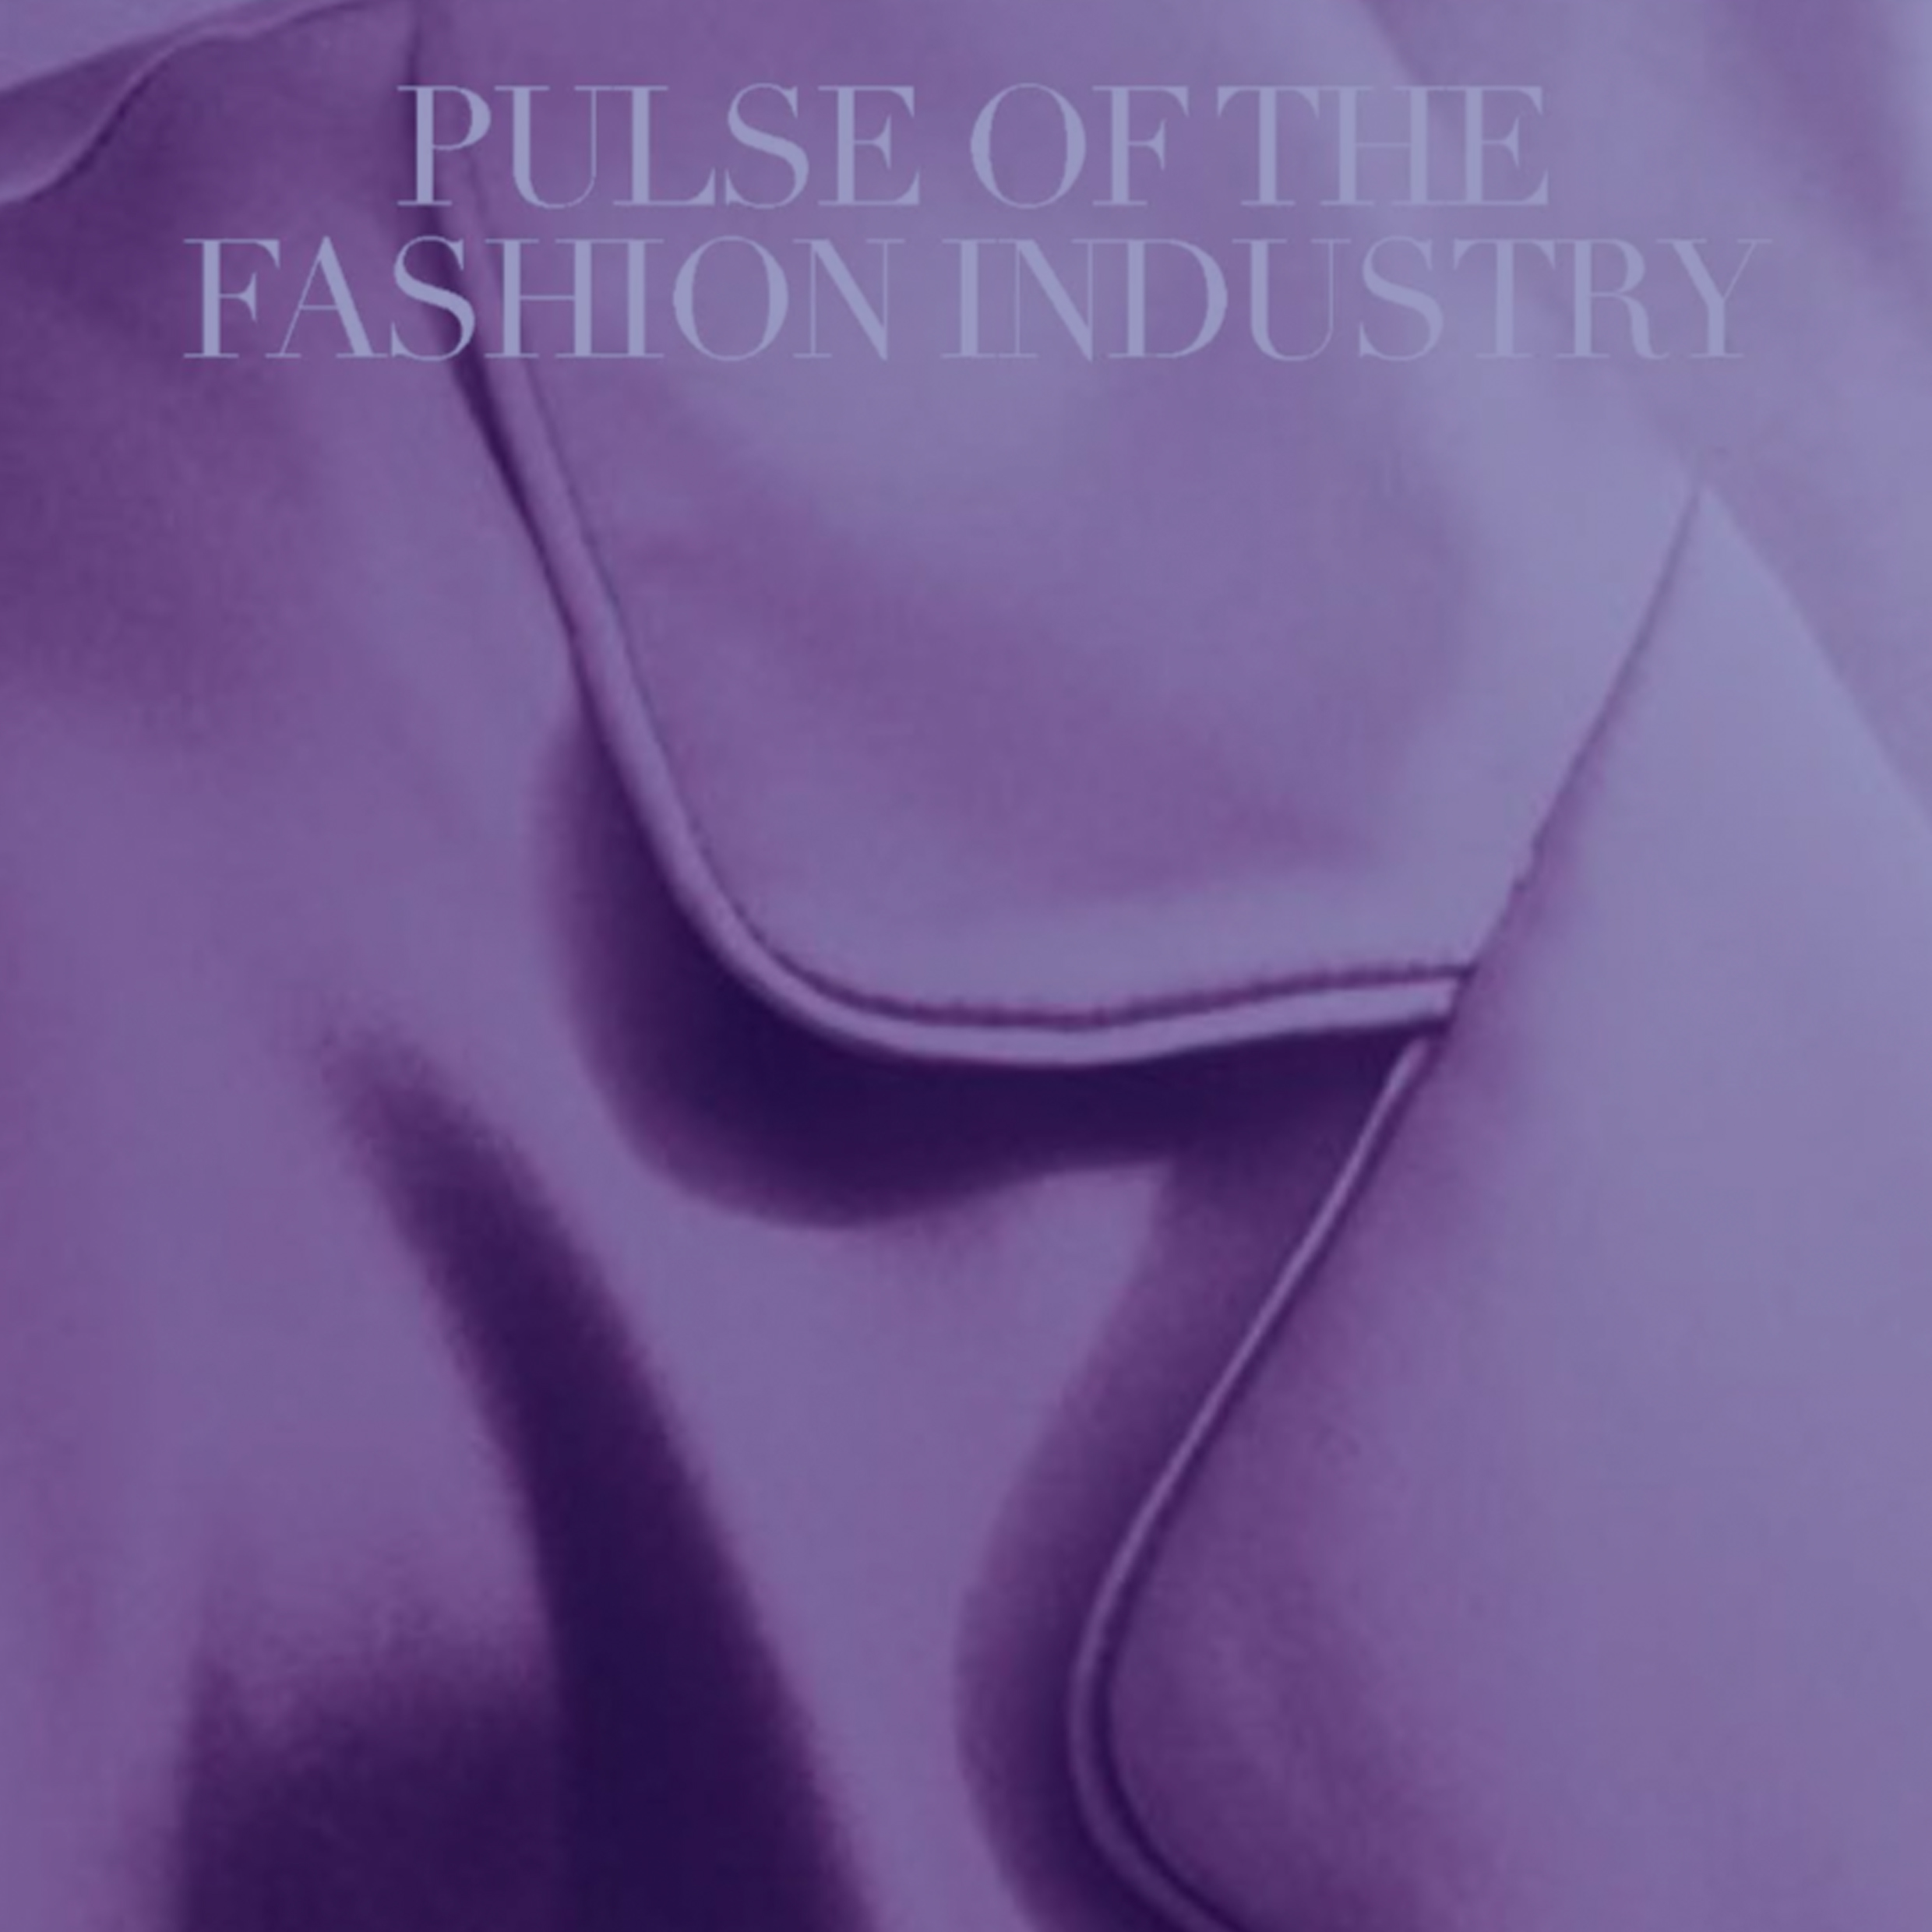 """Sustainability progress in the fashion industry has slowed by a third in the past year and is not moving fast enough to counterbalance the harmful impact of the fashion industry's rapid growth… much more must be done."" - Pulse of the Fashion Industry Report 2019"